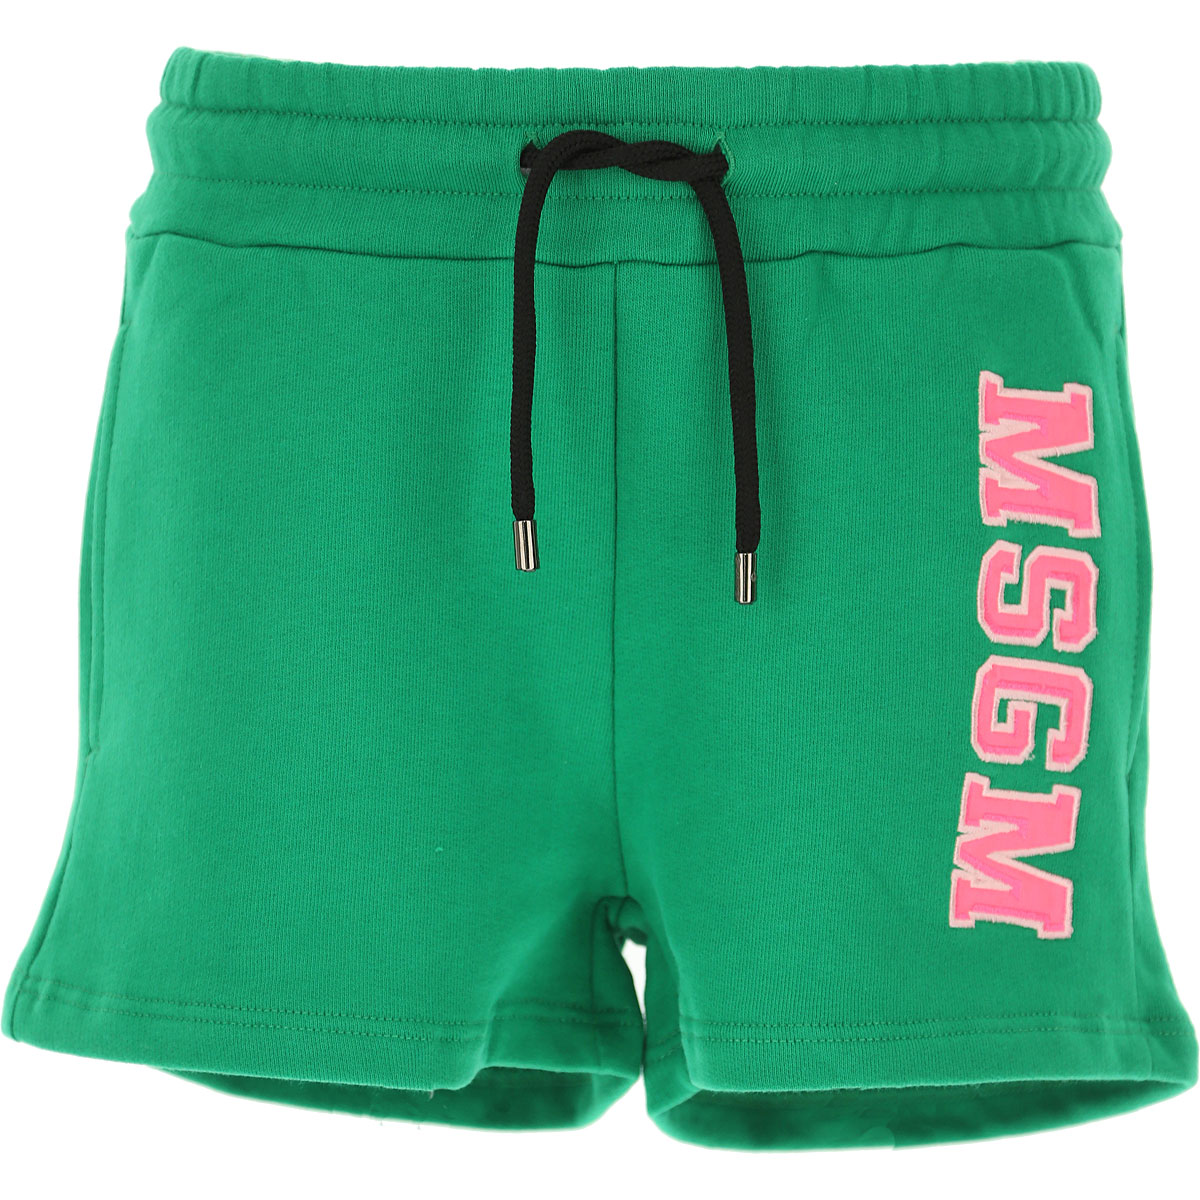 MSGM Kids Shorts for Girls, Green, Cotton, 2017, 10Y